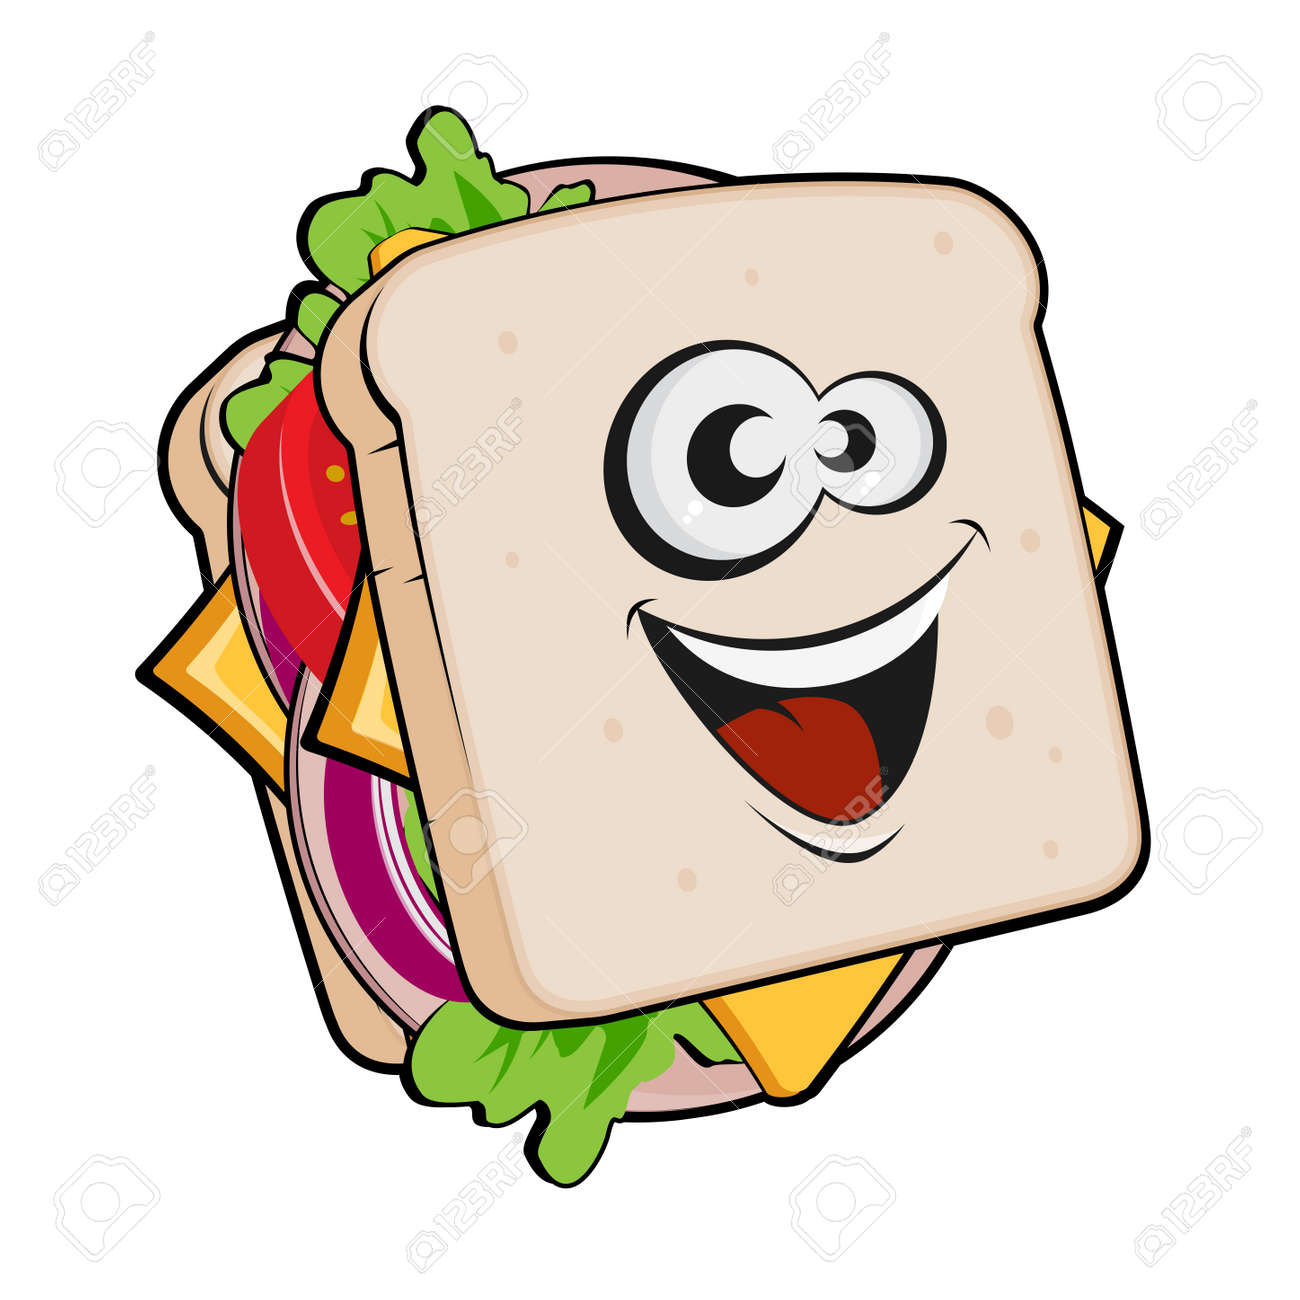 funny cartoon illustration of a sandwich royalty free cliparts vectors and stock illustration image 120308376 funny cartoon illustration of a sandwich